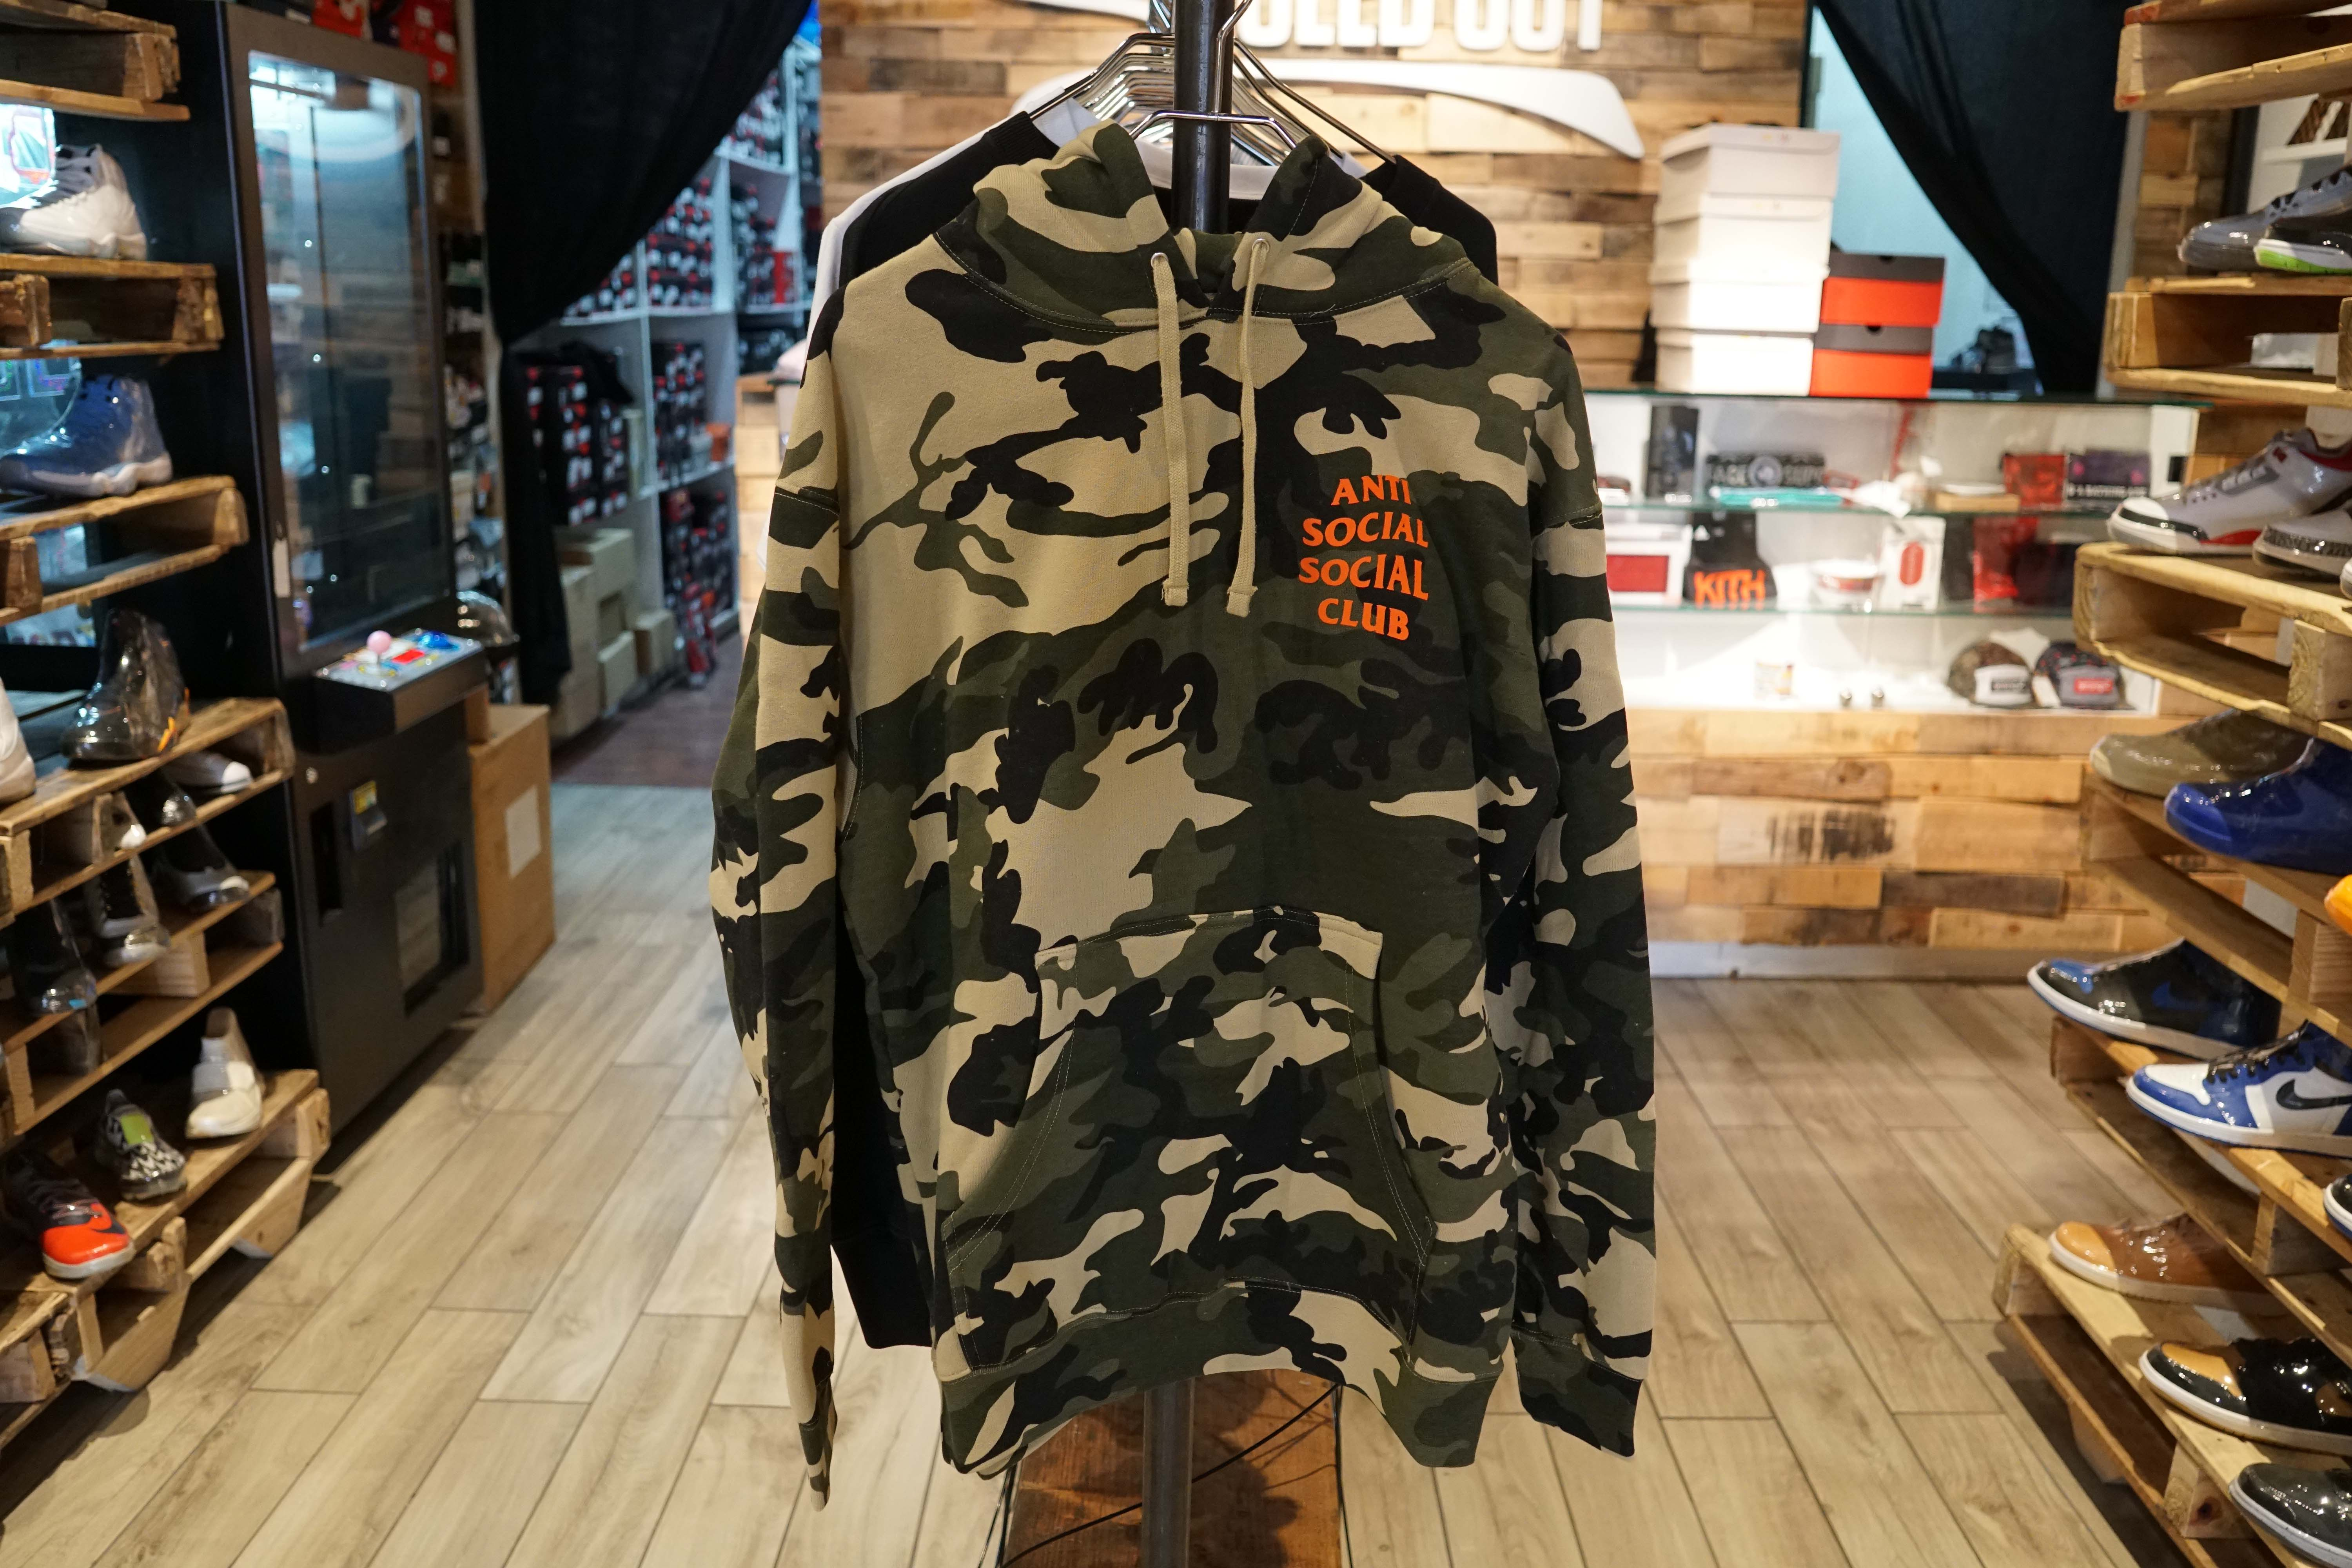 ASSC-Pullover-6TH-ST-Size-Medium-Camo-New-2998-78_17742A.jpg